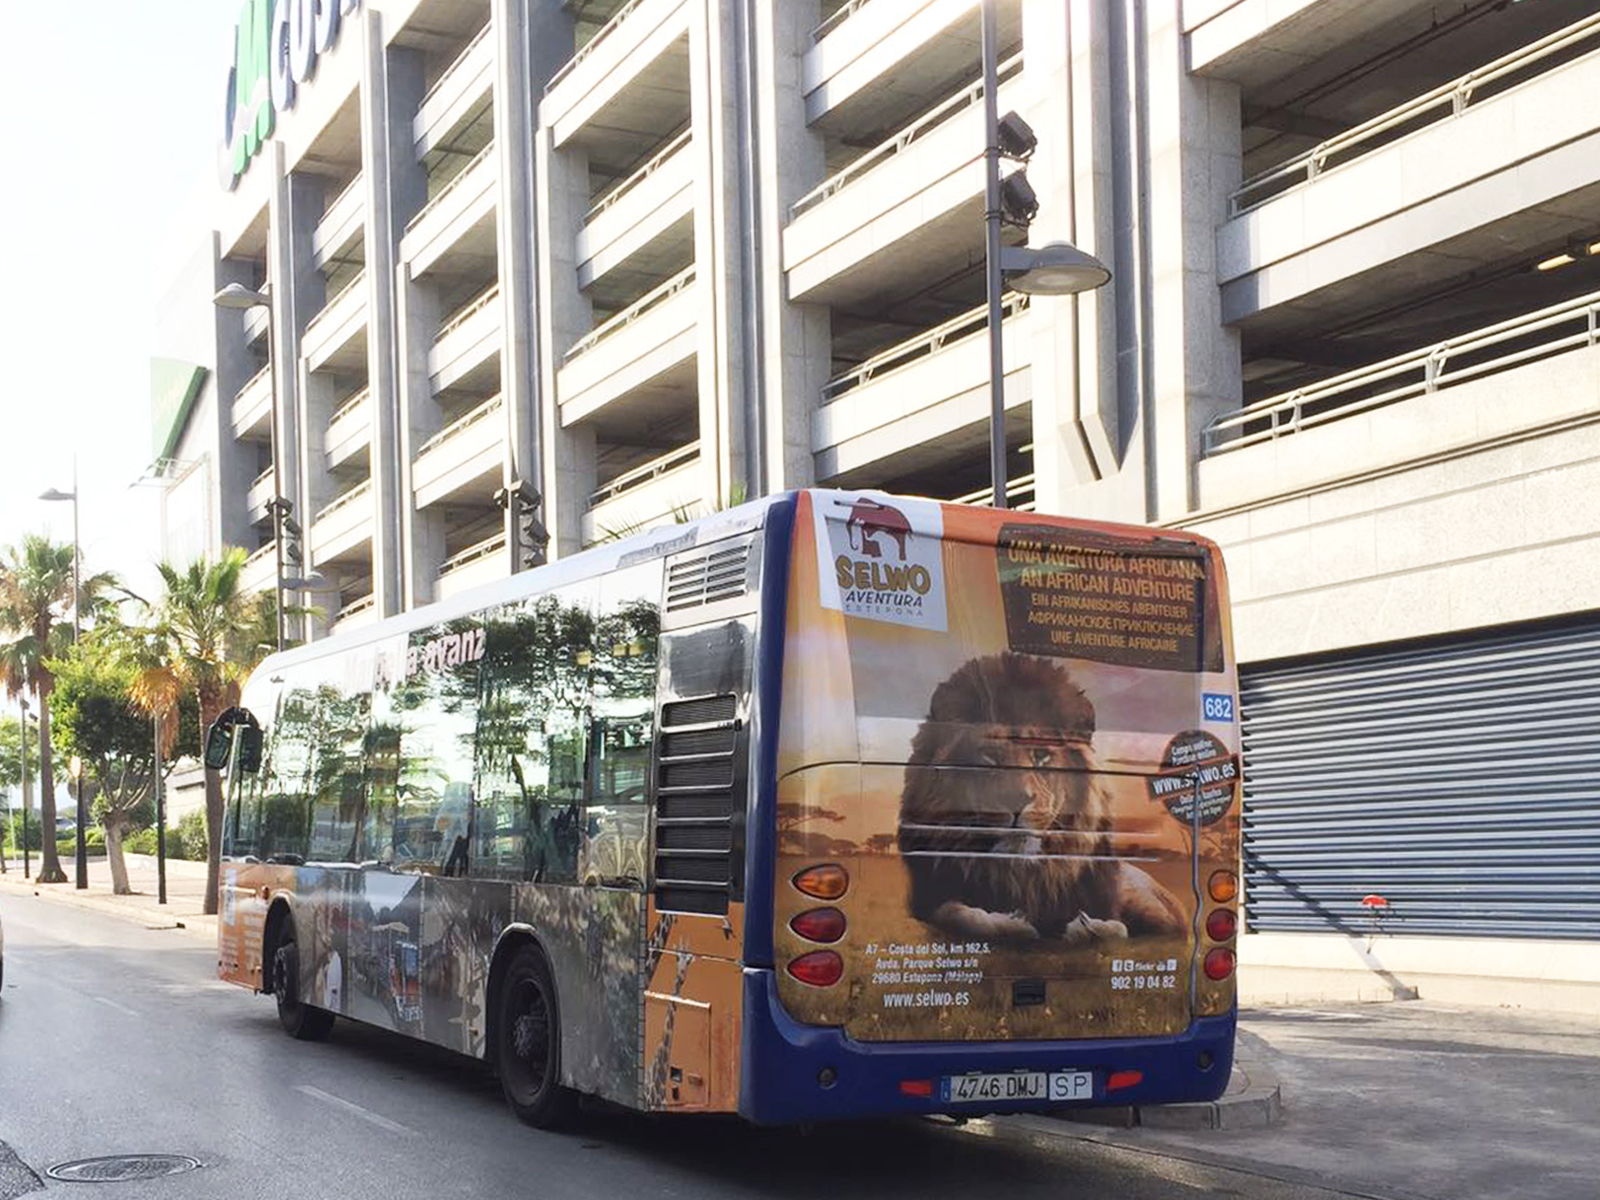 Advertising bus campaign for Selwo Aventura